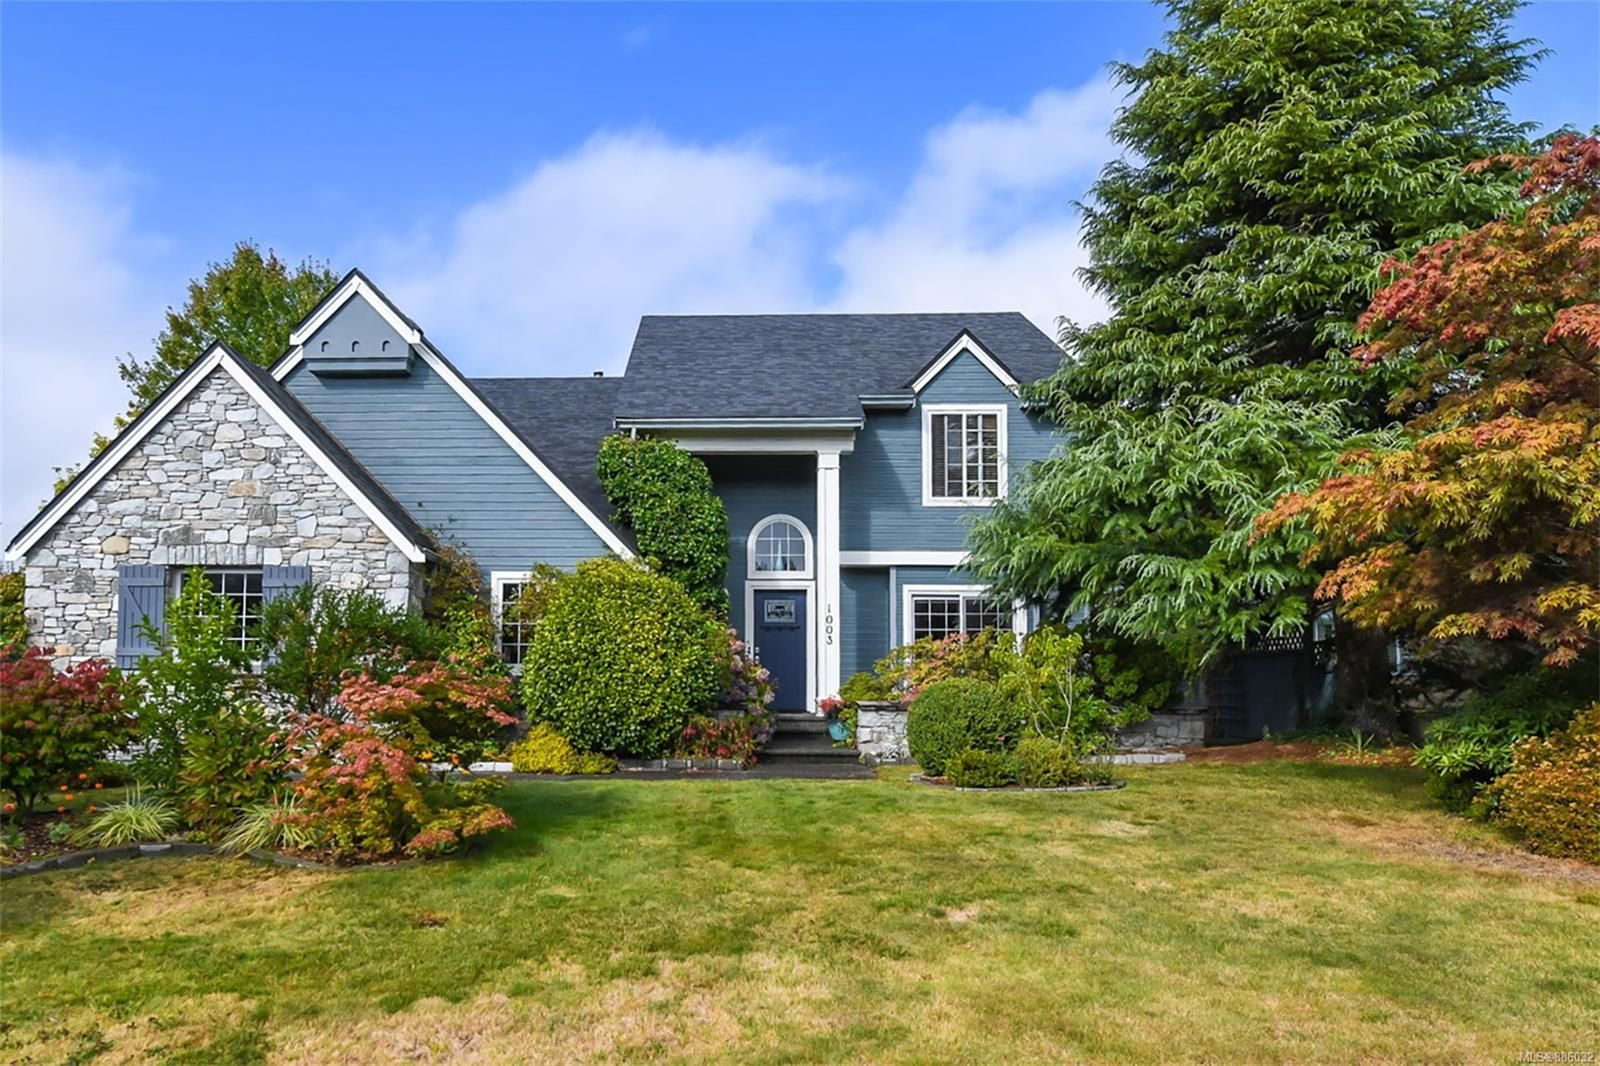 Main Photo: 1003 Kingsley Cres in : CV Comox (Town of) House for sale (Comox Valley)  : MLS®# 886032